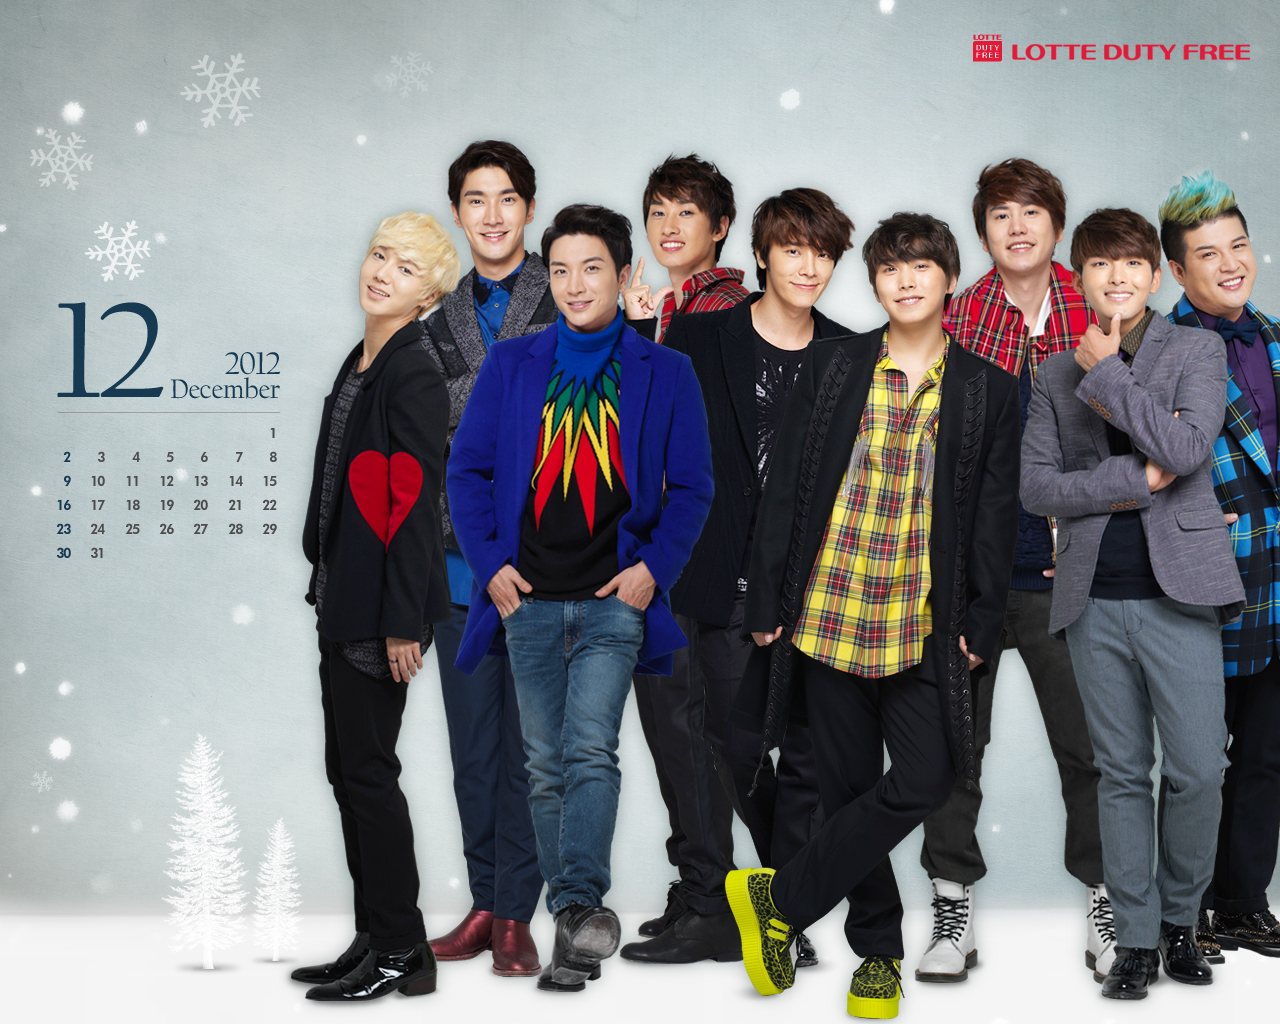 SuJu ~ Dec 2012 Calendar  Super Junior Wallpaper 32897917  Fanpop